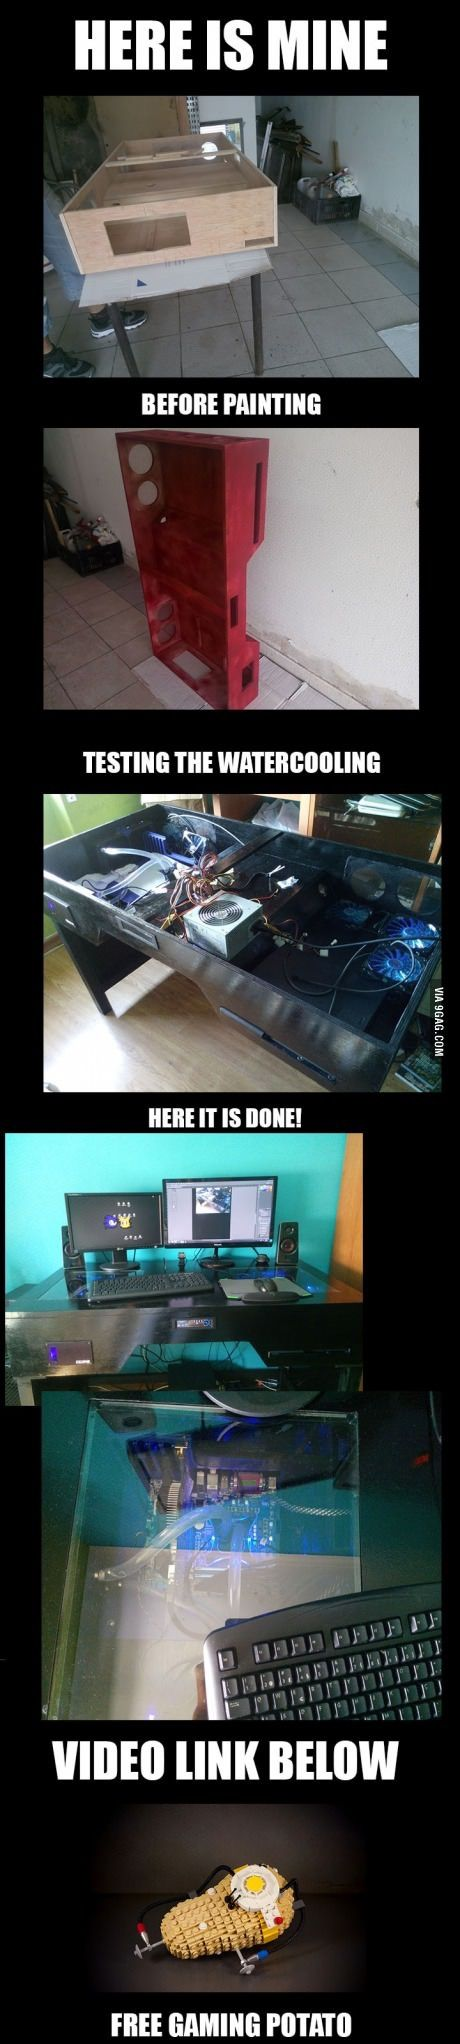 Checkout this awesome #customPC build! Worth considering for my next work/play #PC :) #gadgets #tech #gamersdream